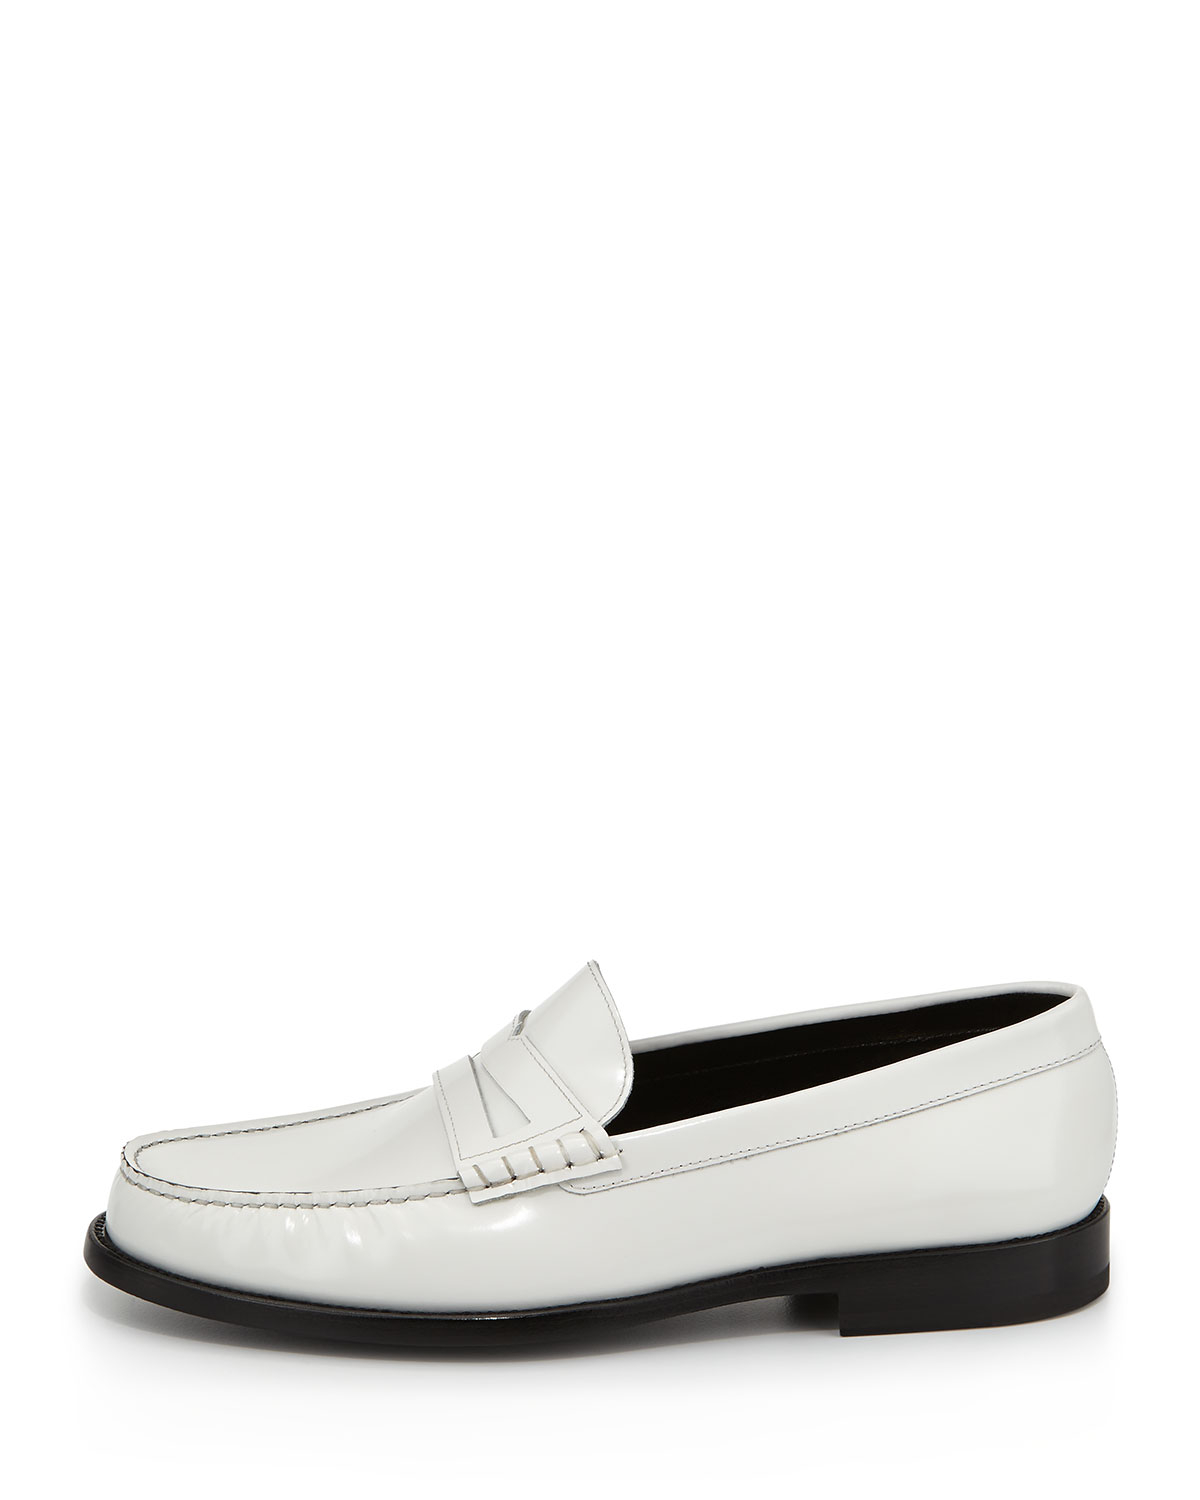 Lyst - Saint laurent Classic Leather Penny Loafer White in ...